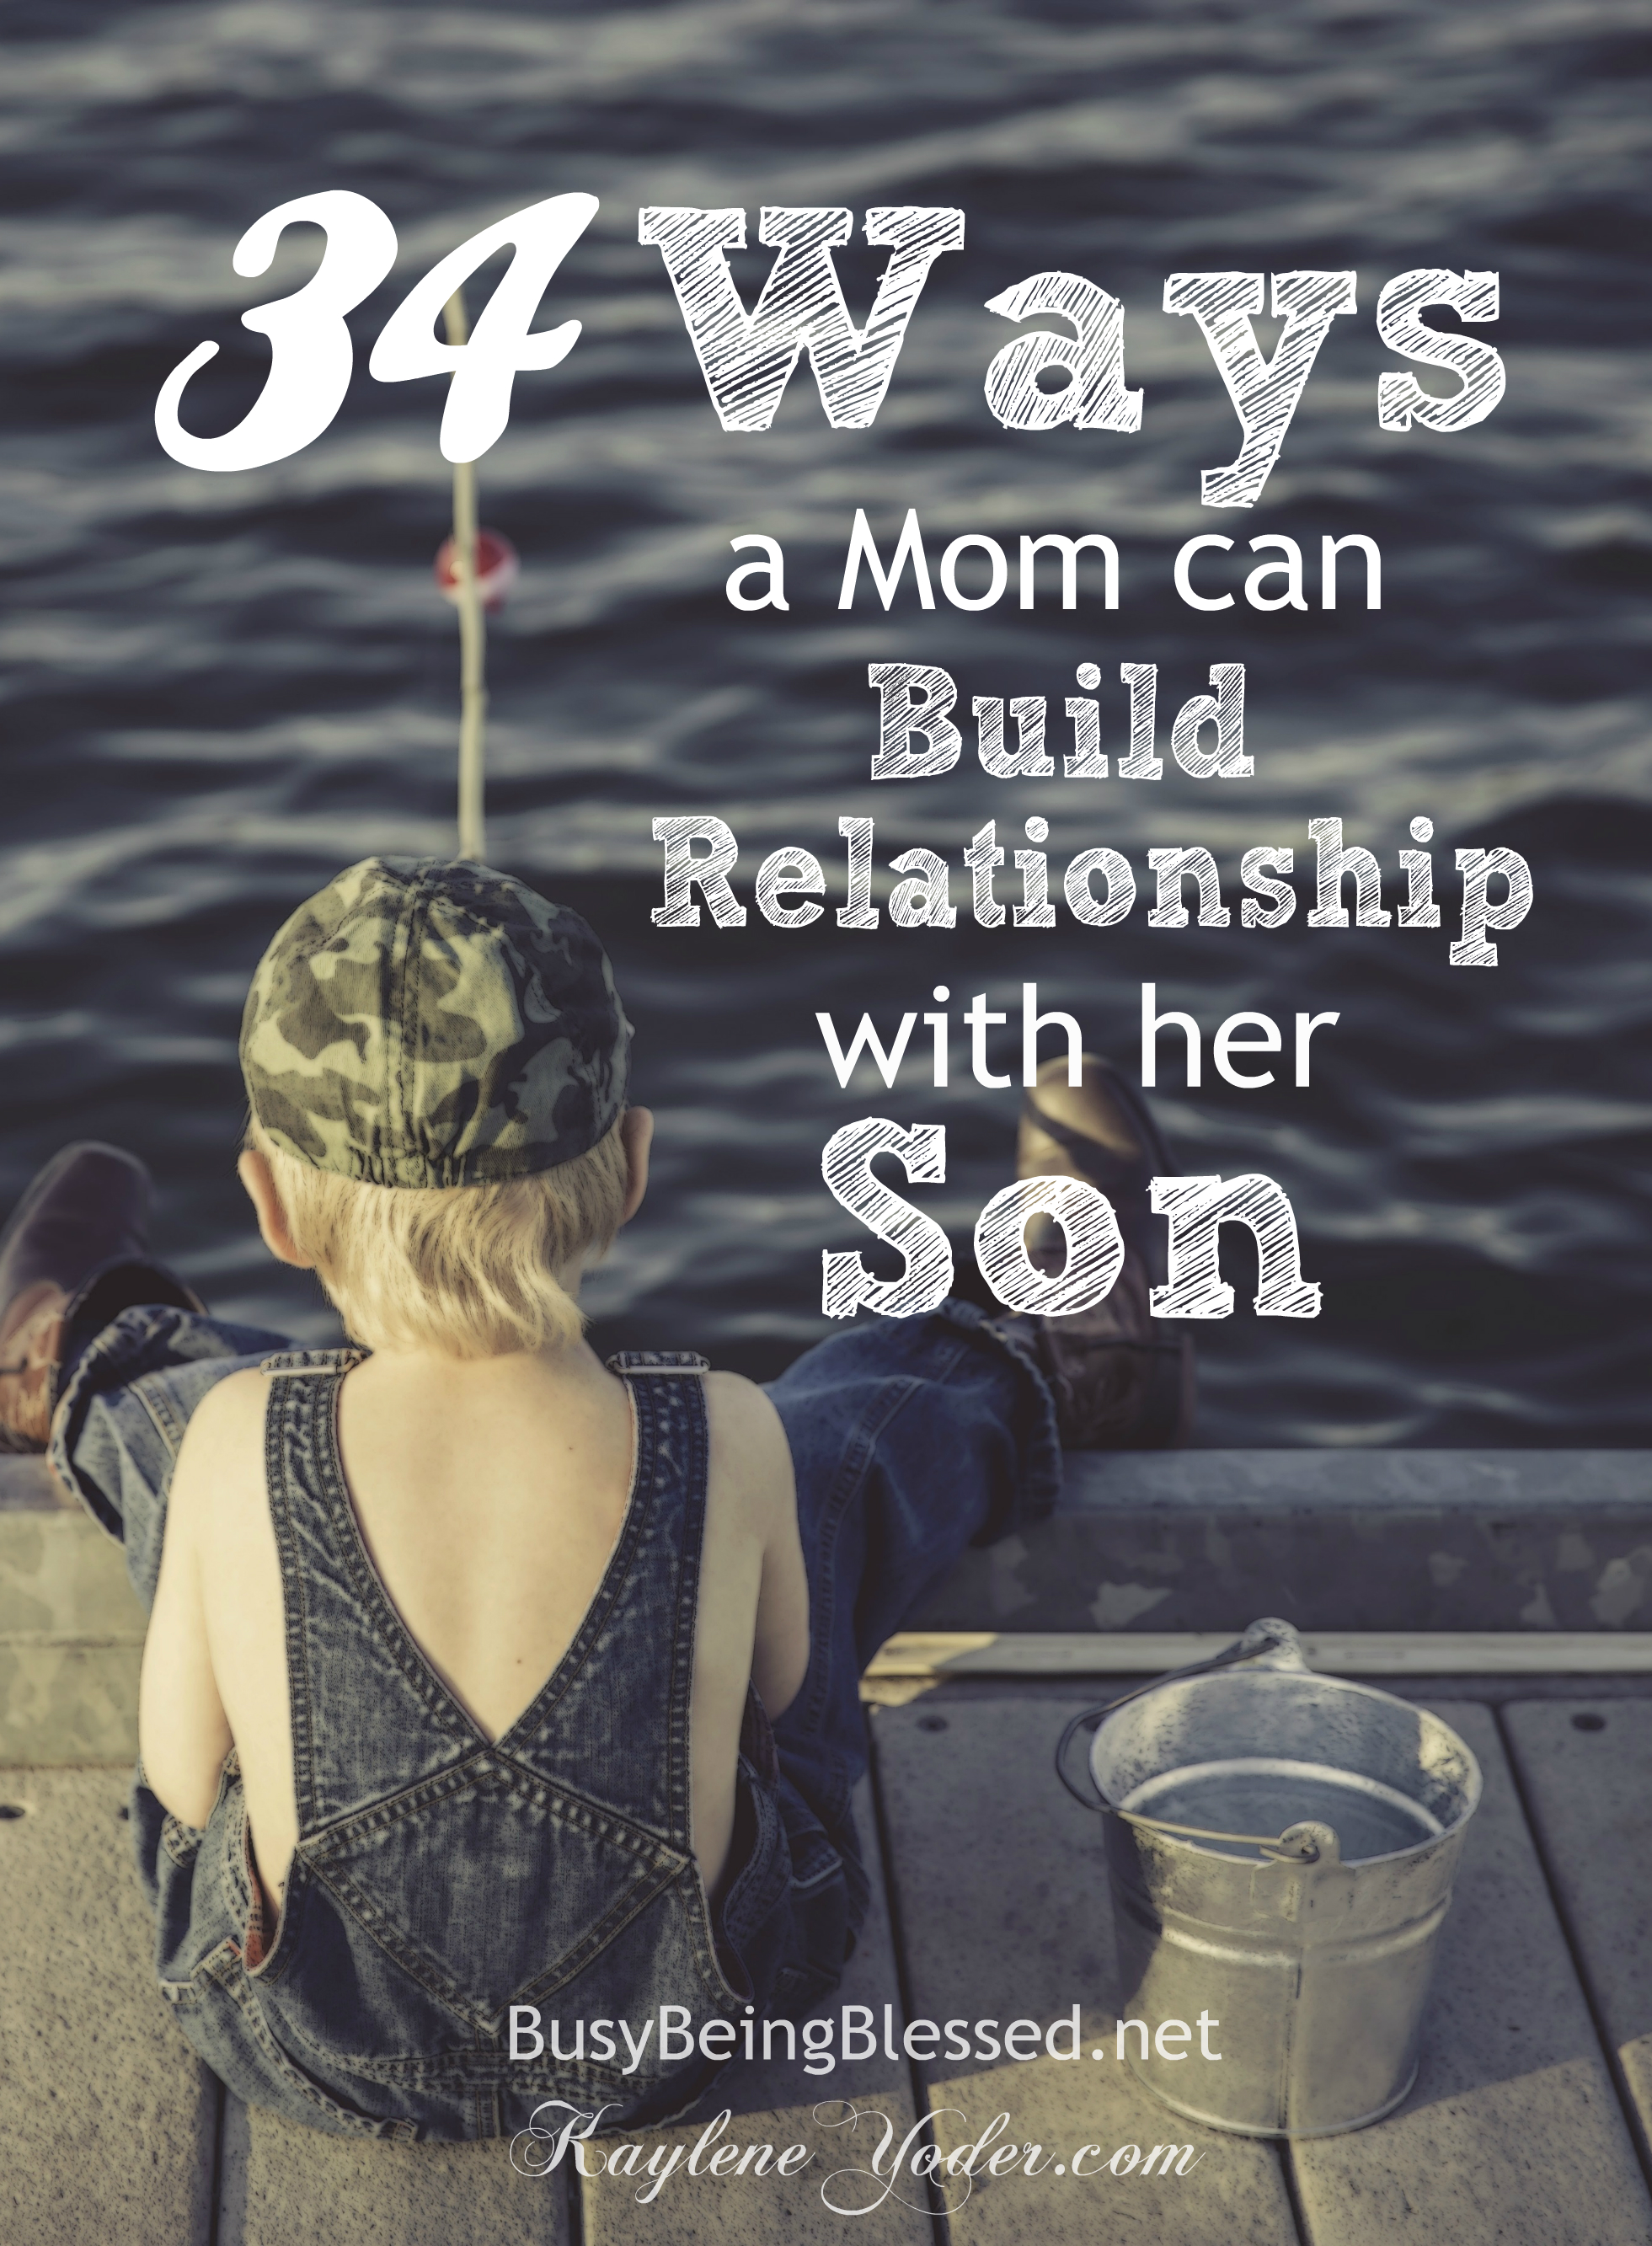 Thirty-four ways a mom can build a relationship with her son